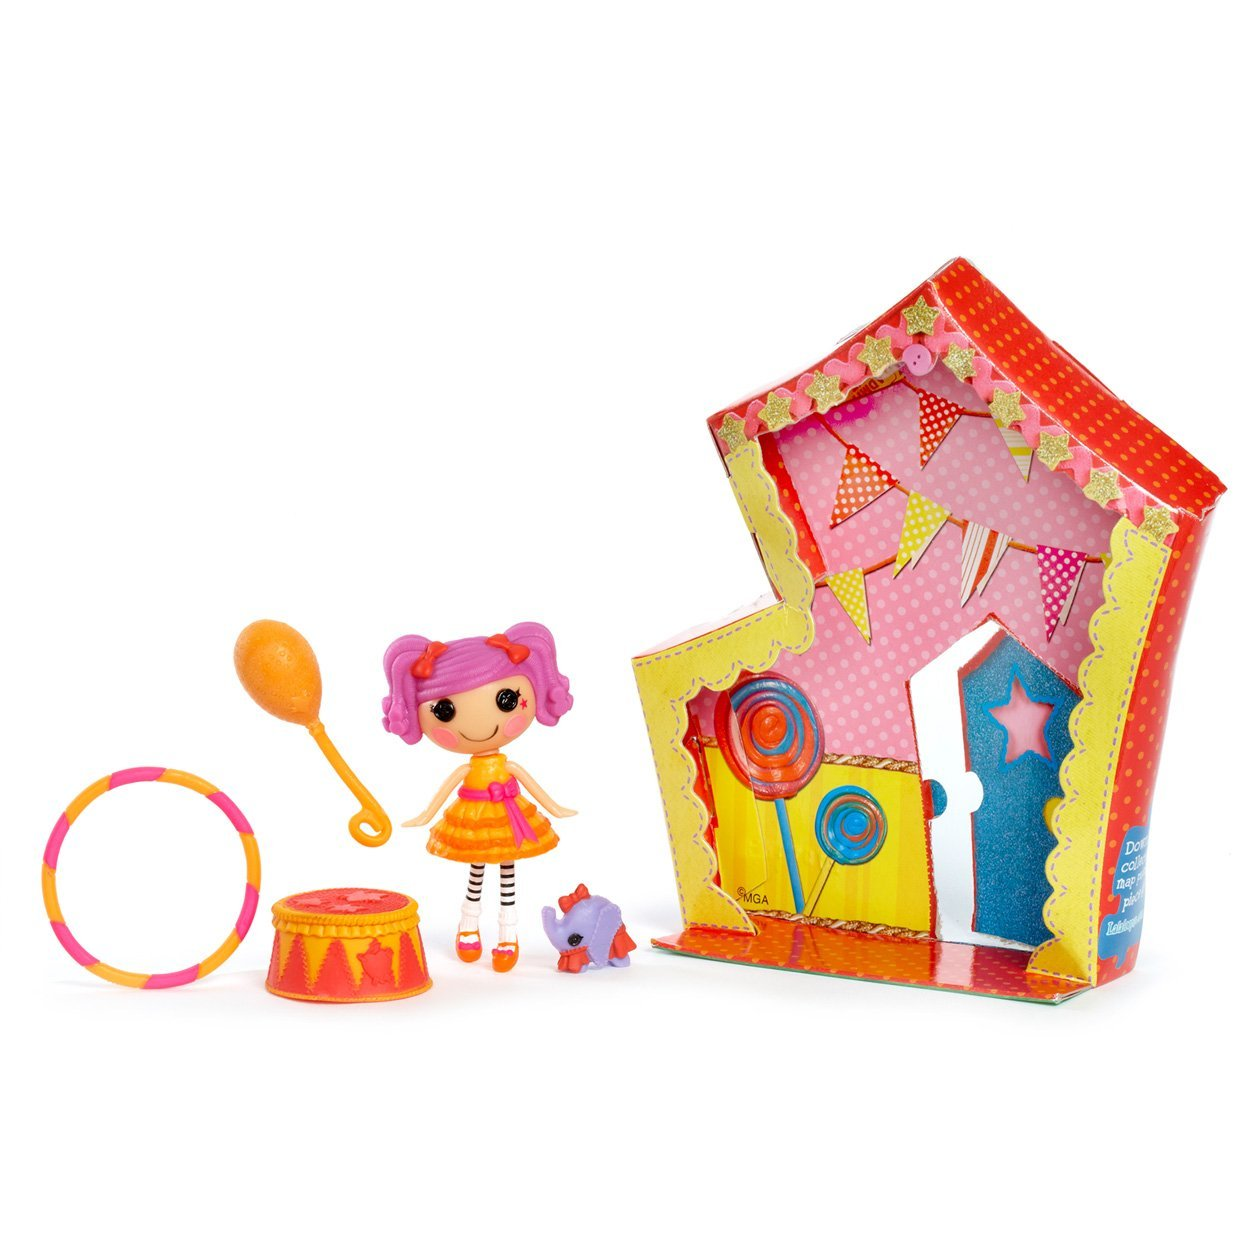 Mini Peanuts Elephant Act, Lalaloopsy Mini Peanuts Elephant Act with accessories. By LALALOOPSY